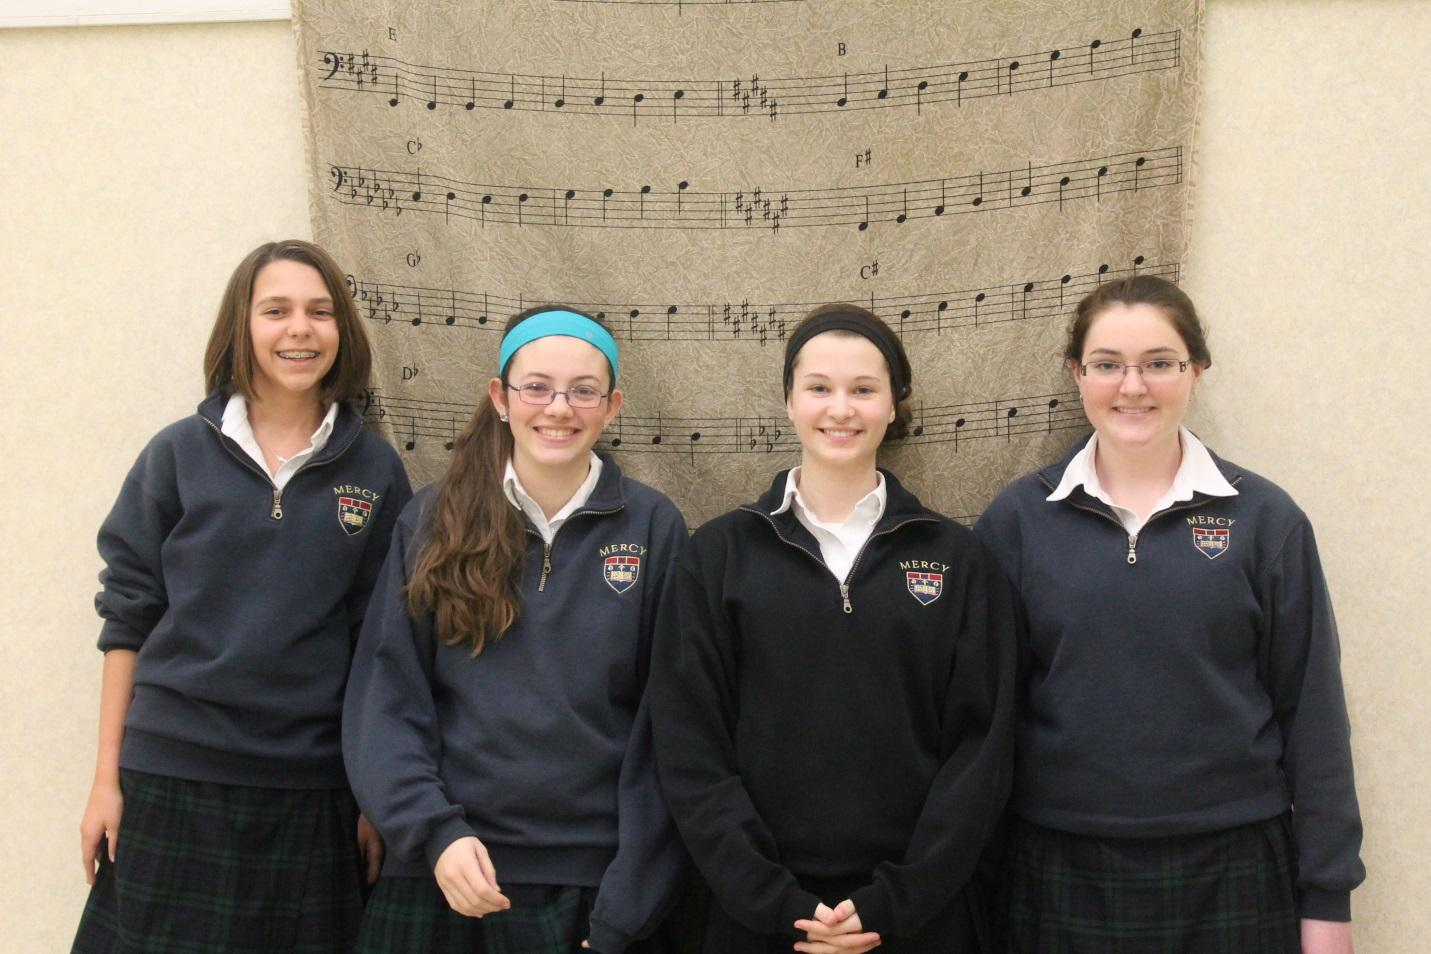 Mercy is one of many high schools to send students to Solo and Ensemble each year.